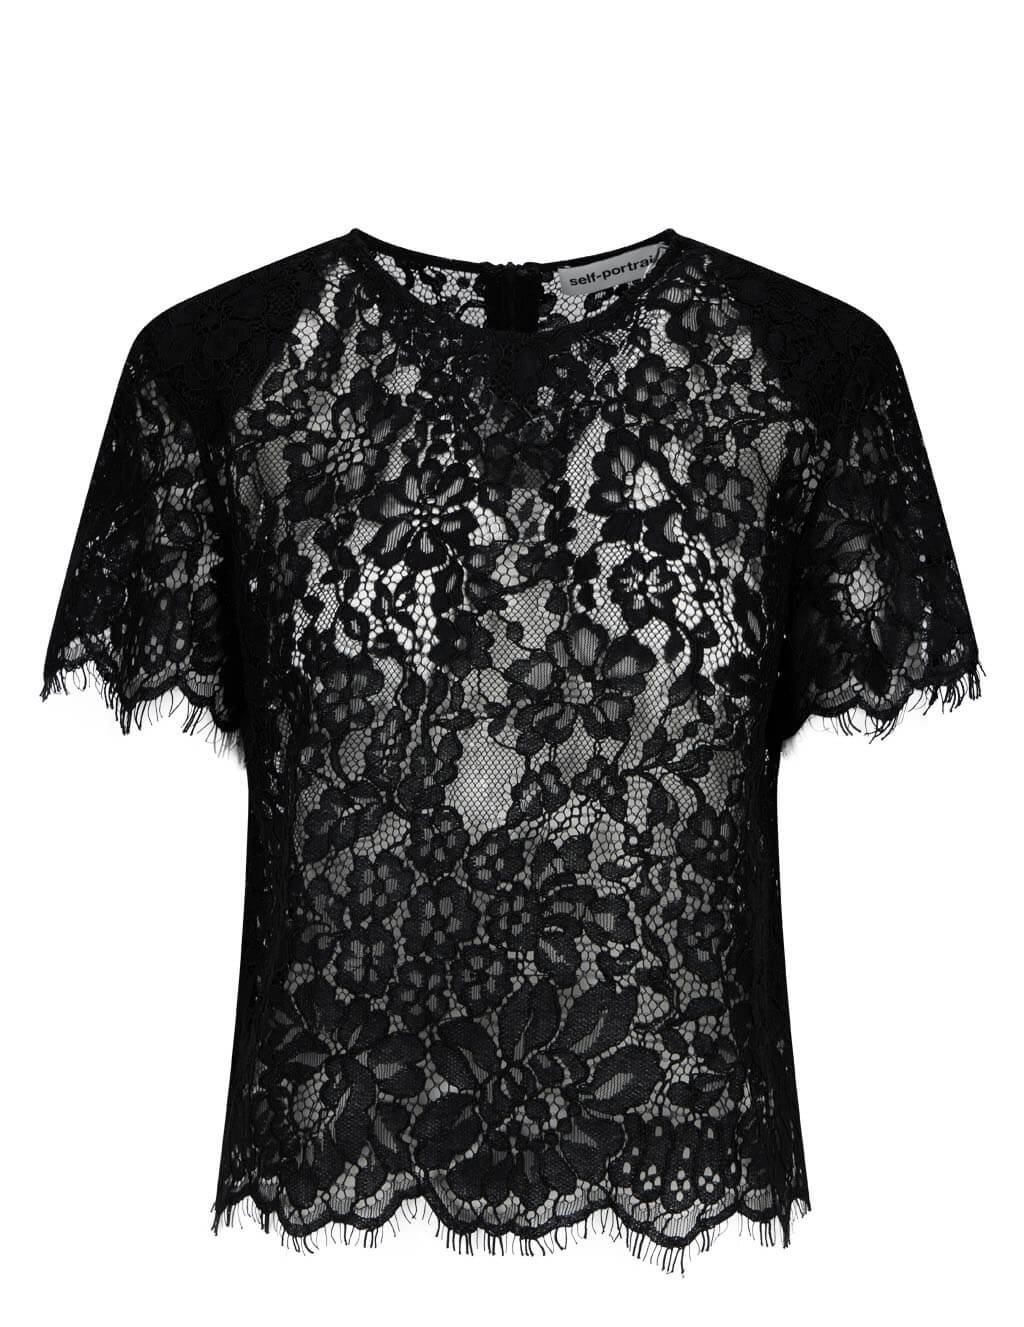 Women's self-portrait Cord Lace Sleeved Top in Black - RS21-068T